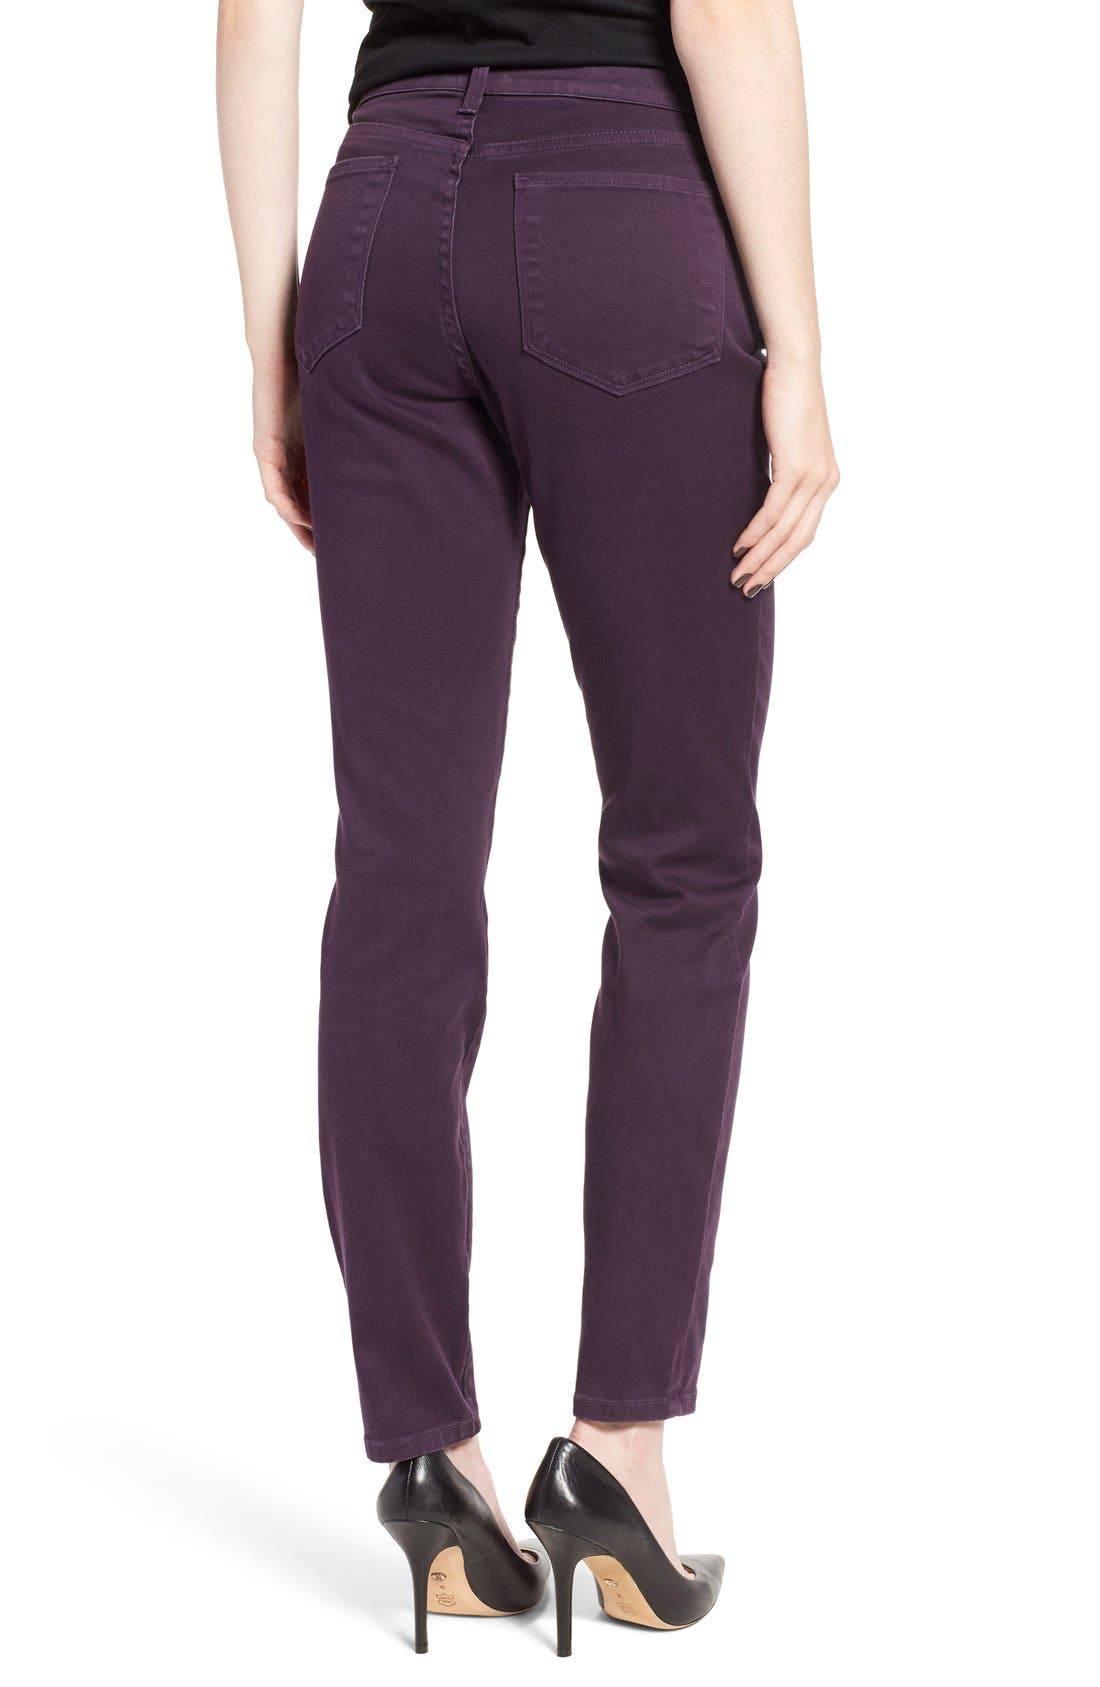 Alina Colored Stretch Skinny Jeans,                             Alternate thumbnail 2, color,                             Deep Violette